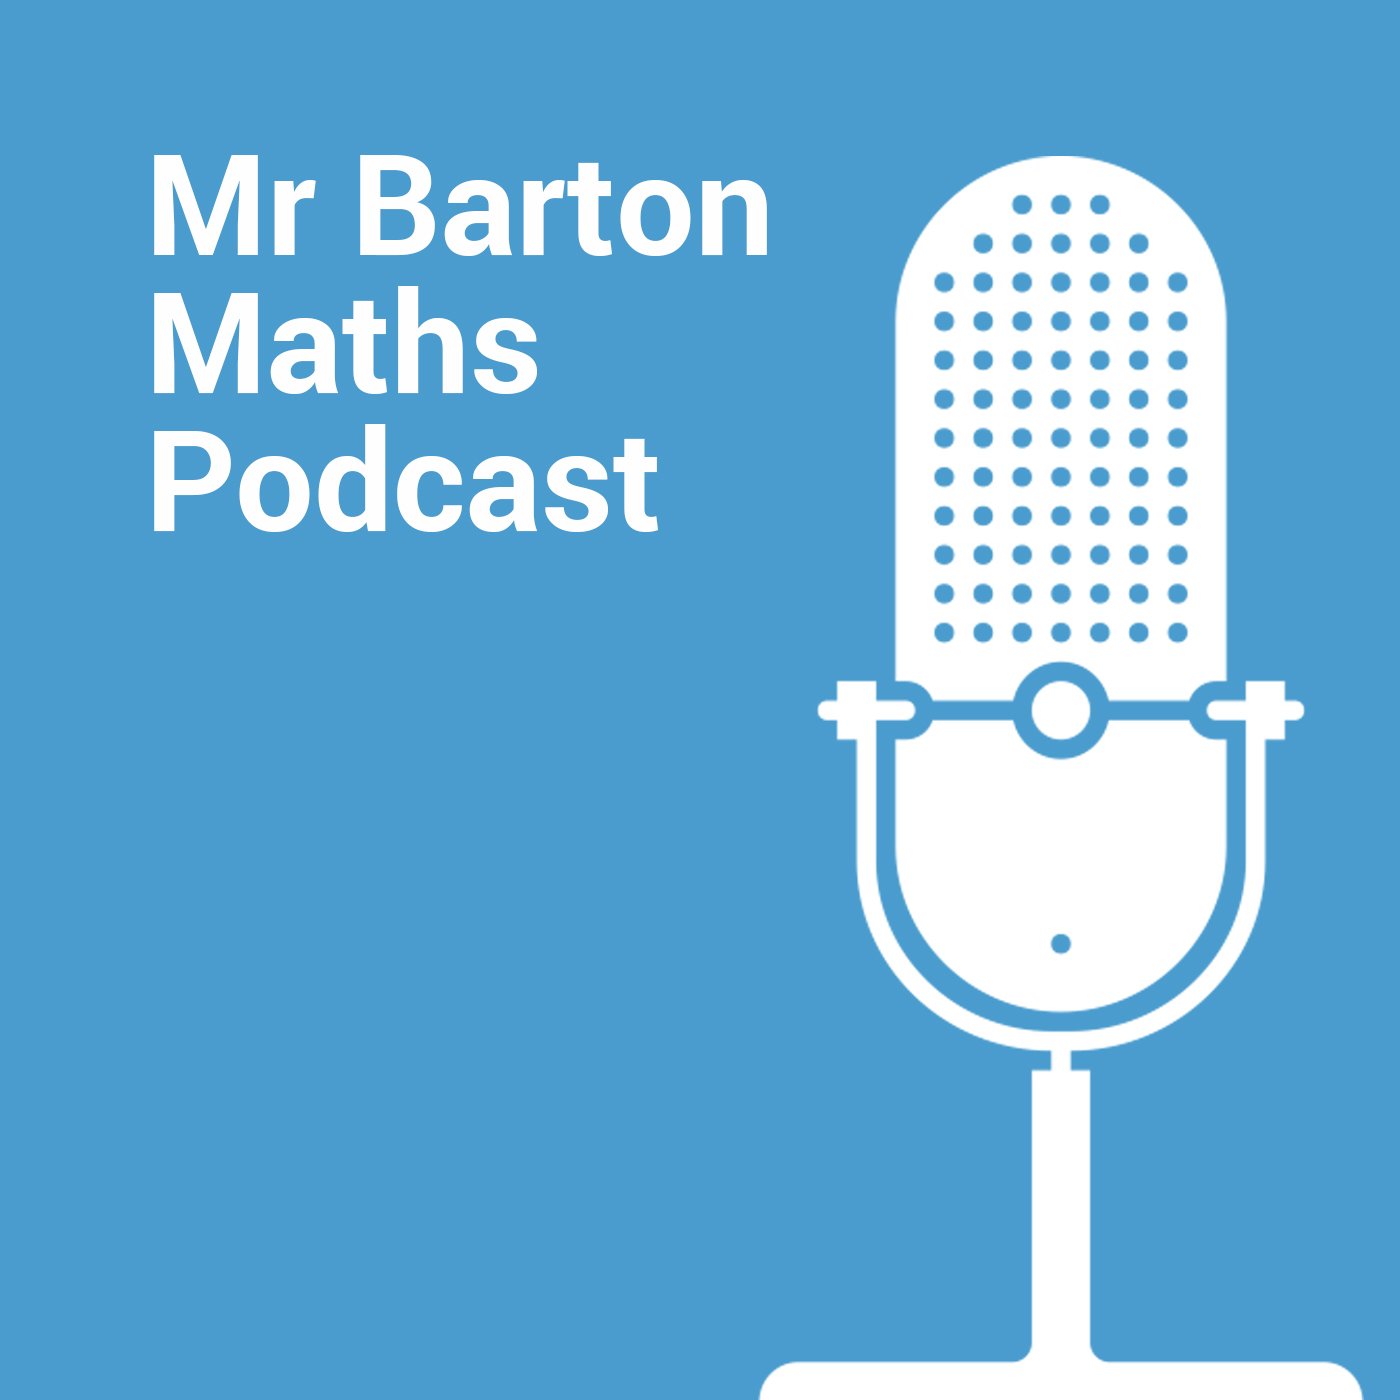 Mr Barton Maths Podcast